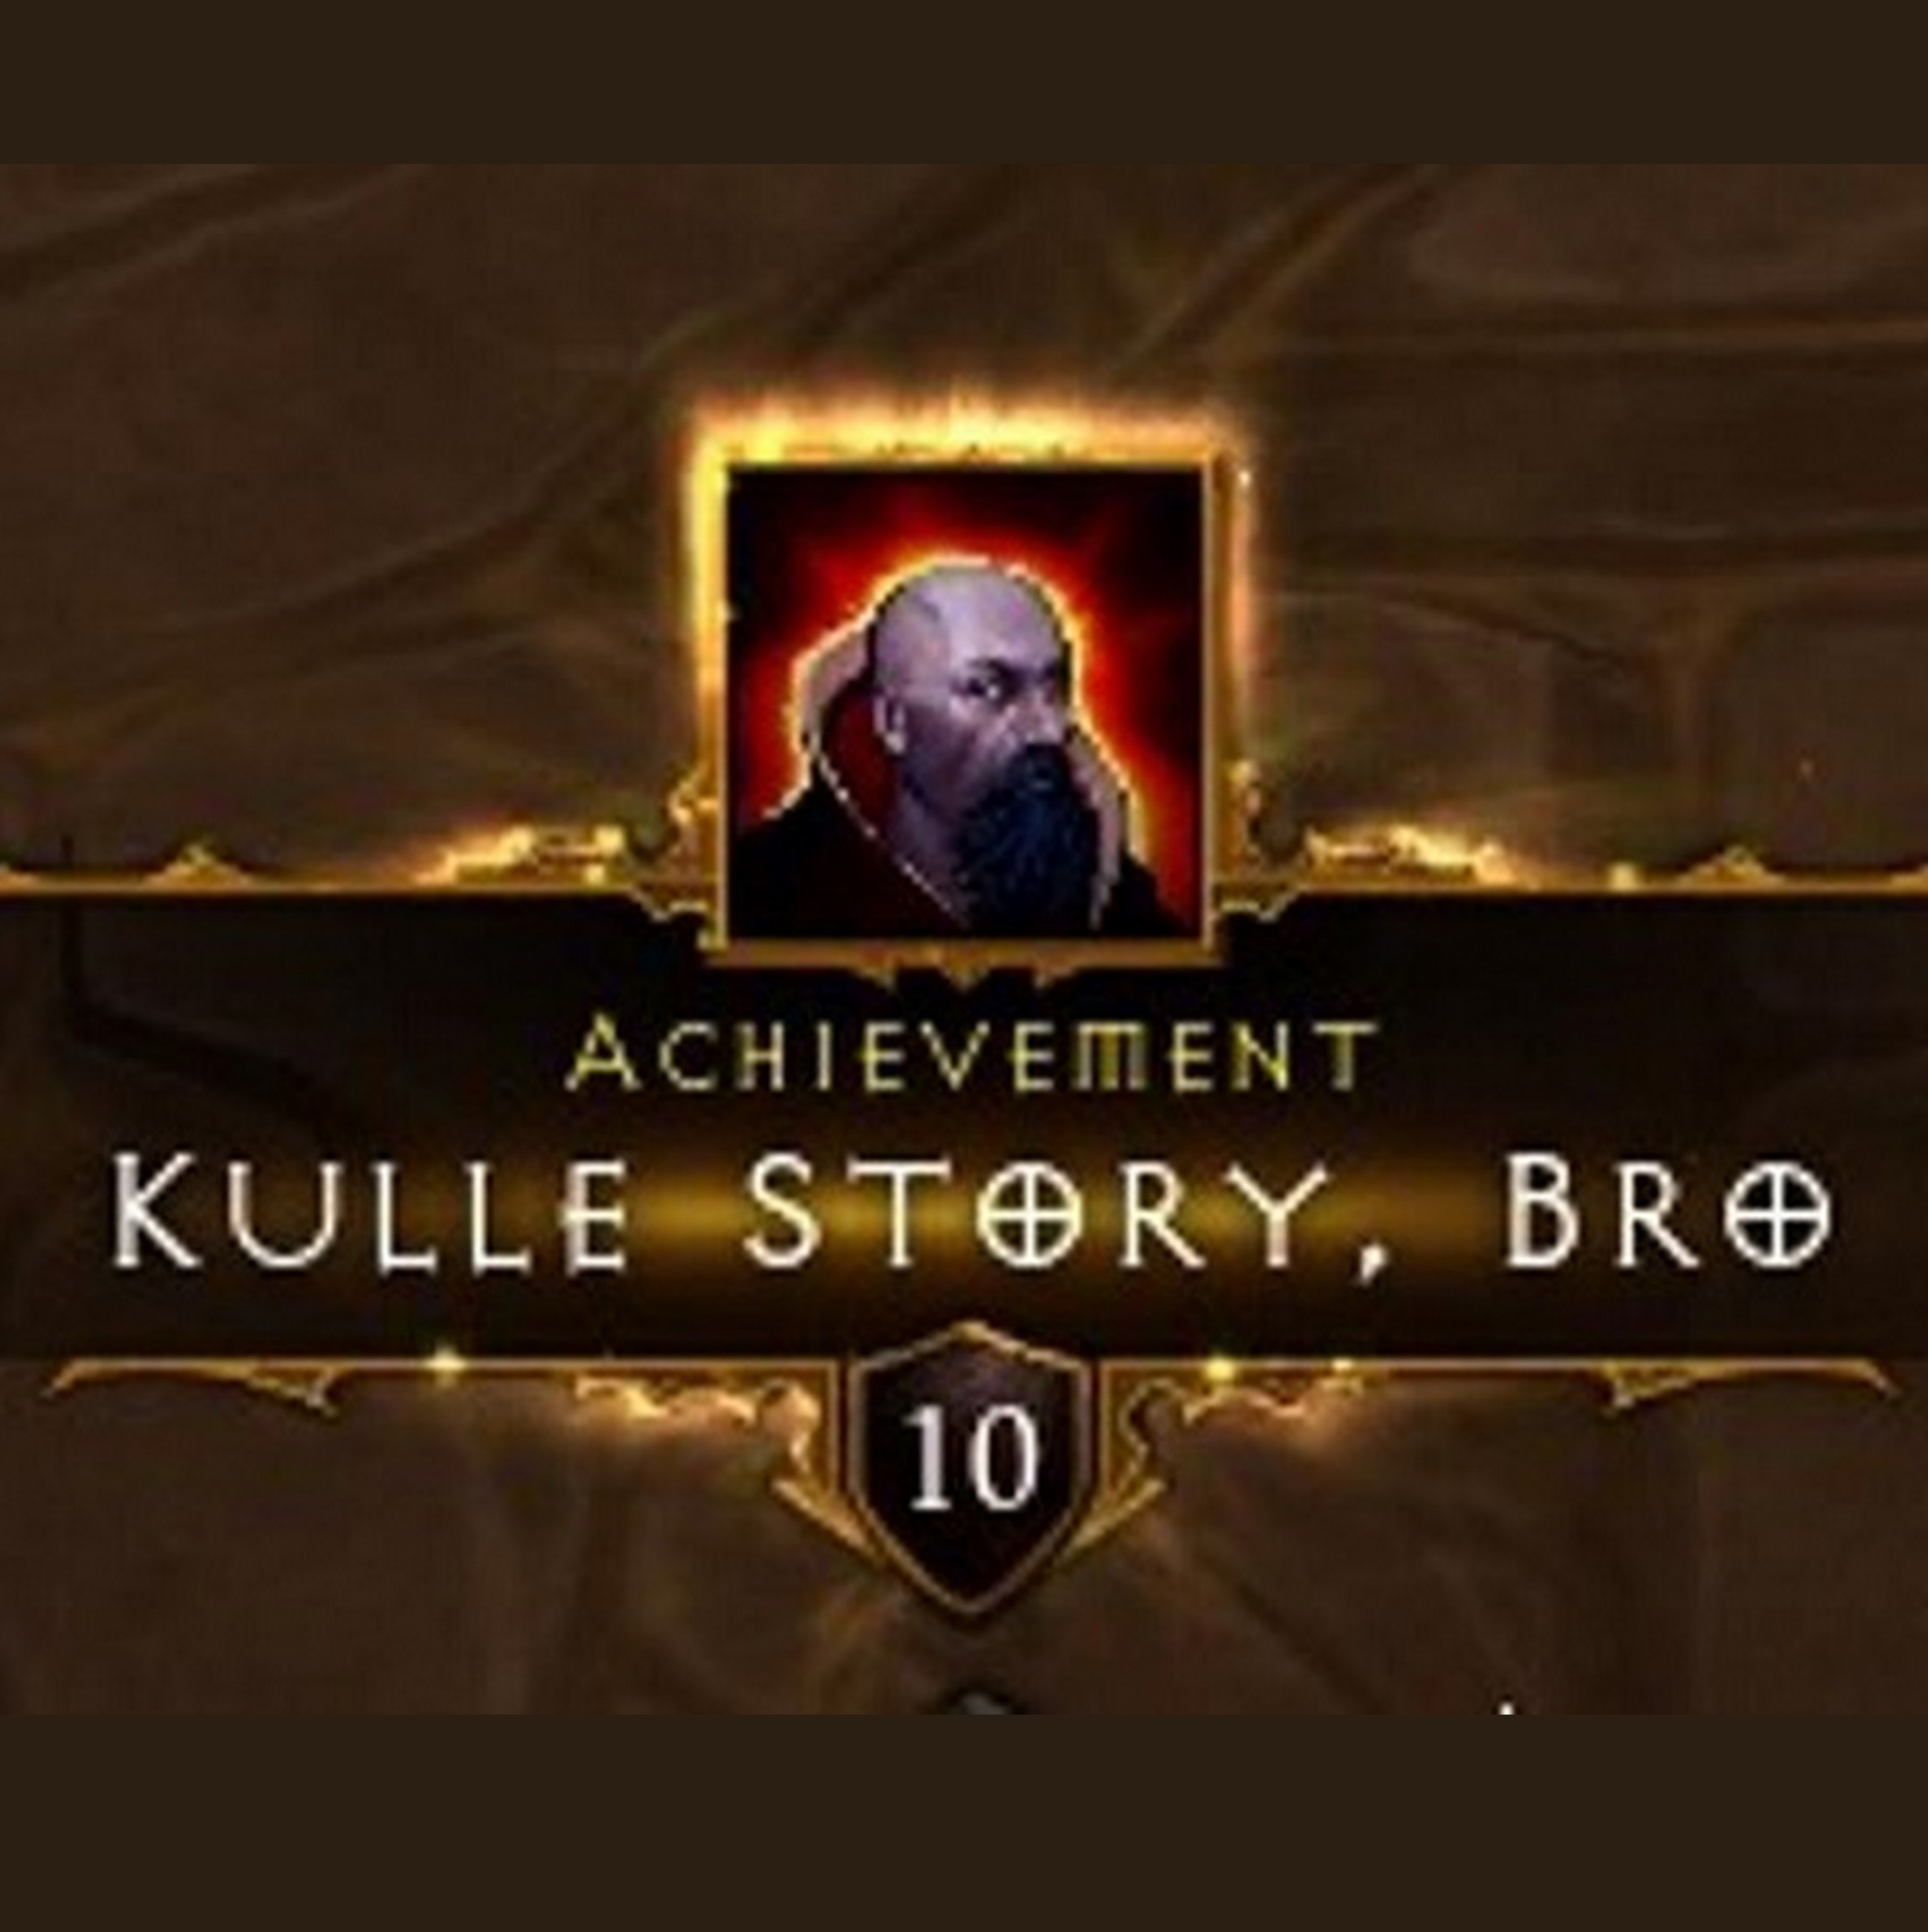 Kulle Story Bro - A Diablo 3 Podcast Episode 15